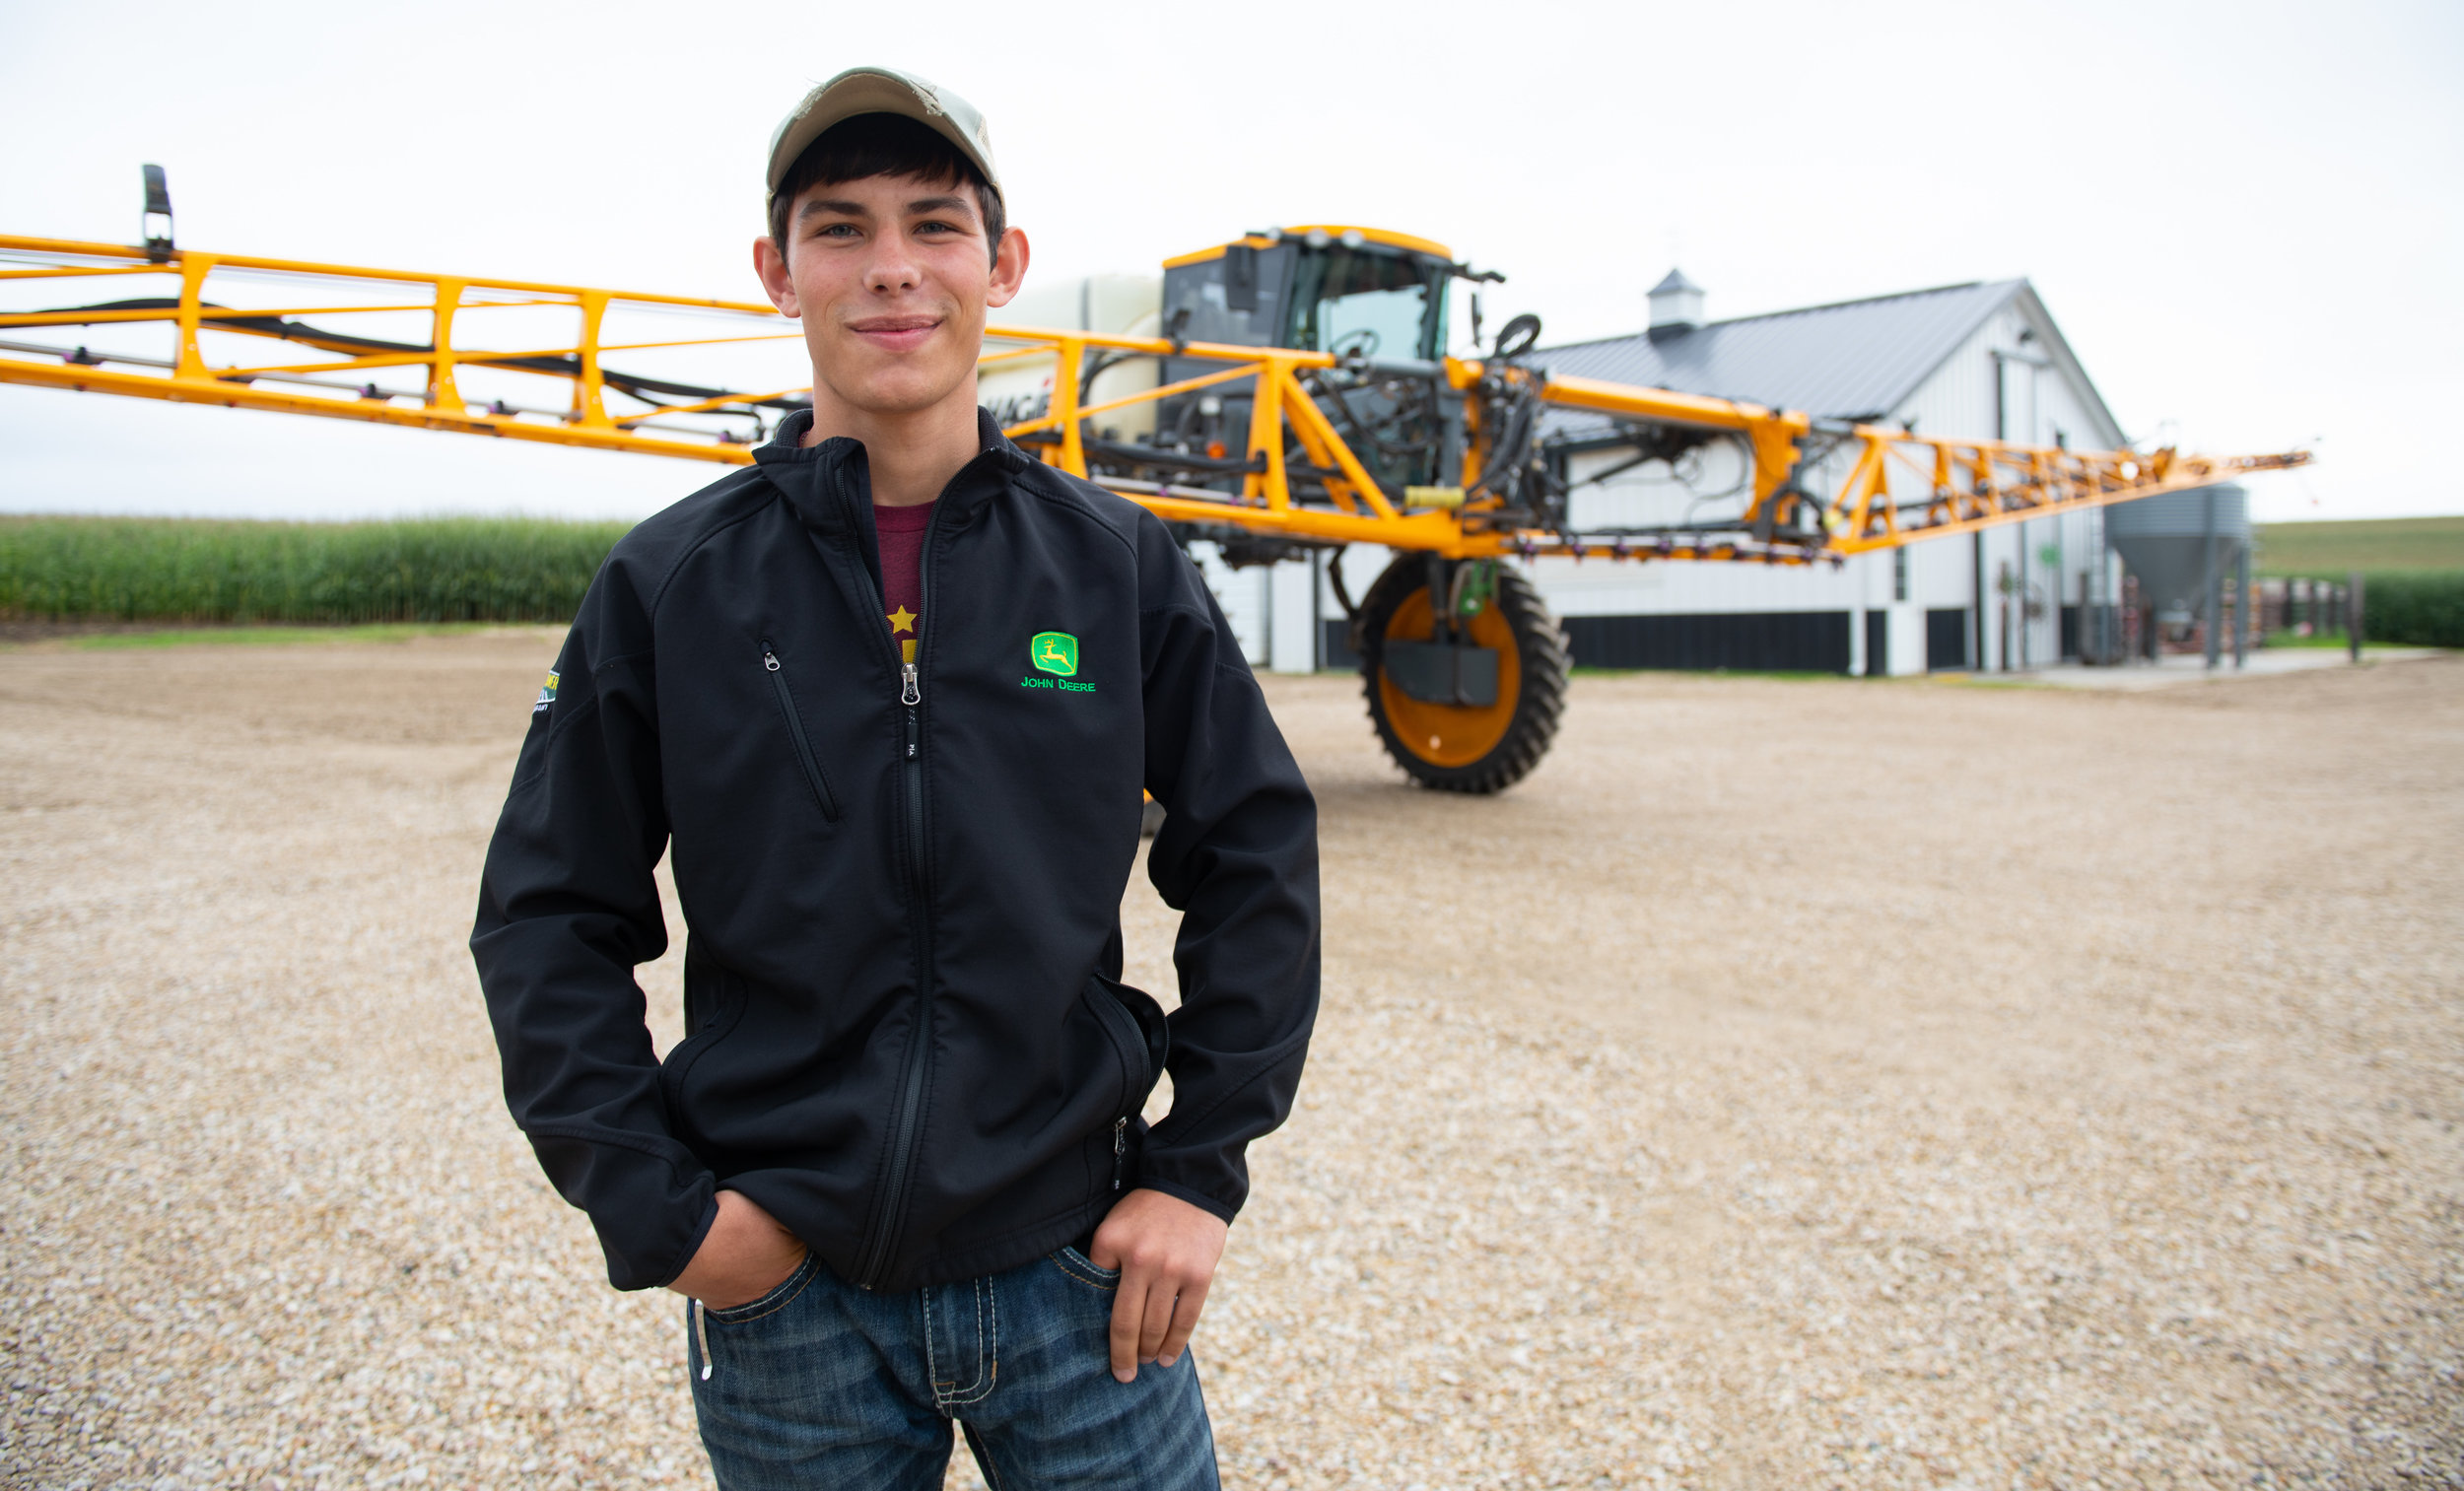 Andrey Shirbroun shared how he uses drones to scout soybean and corn fields. Photo credit: Joseph L. Murphy/Iowa Soybean Association